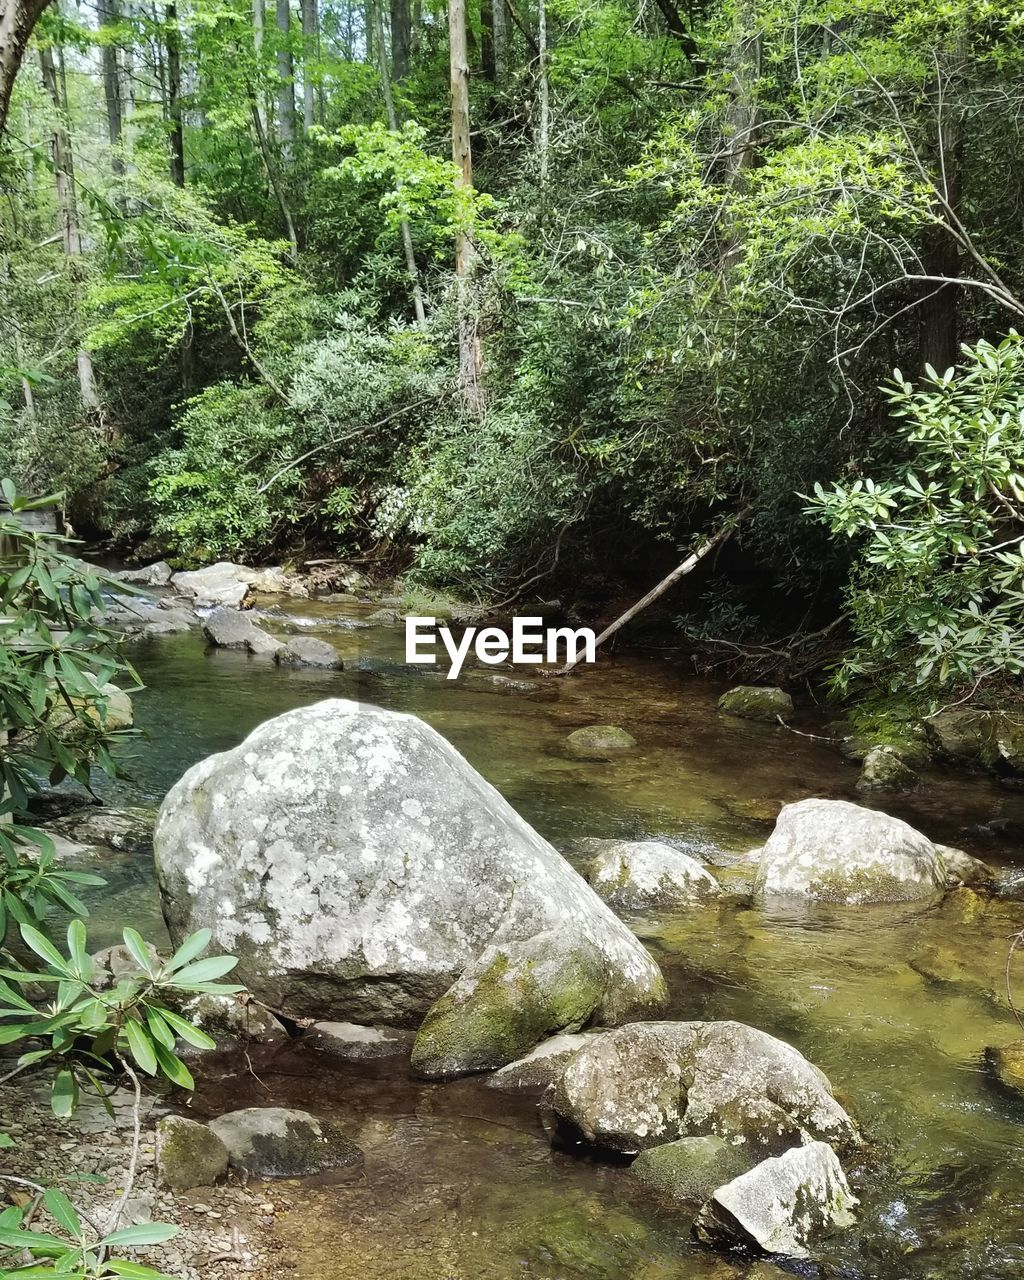 water, forest, plant, tree, rock, solid, tranquility, rock - object, nature, beauty in nature, growth, land, no people, day, scenics - nature, tranquil scene, river, flowing water, outdoors, stream - flowing water, flowing, shallow